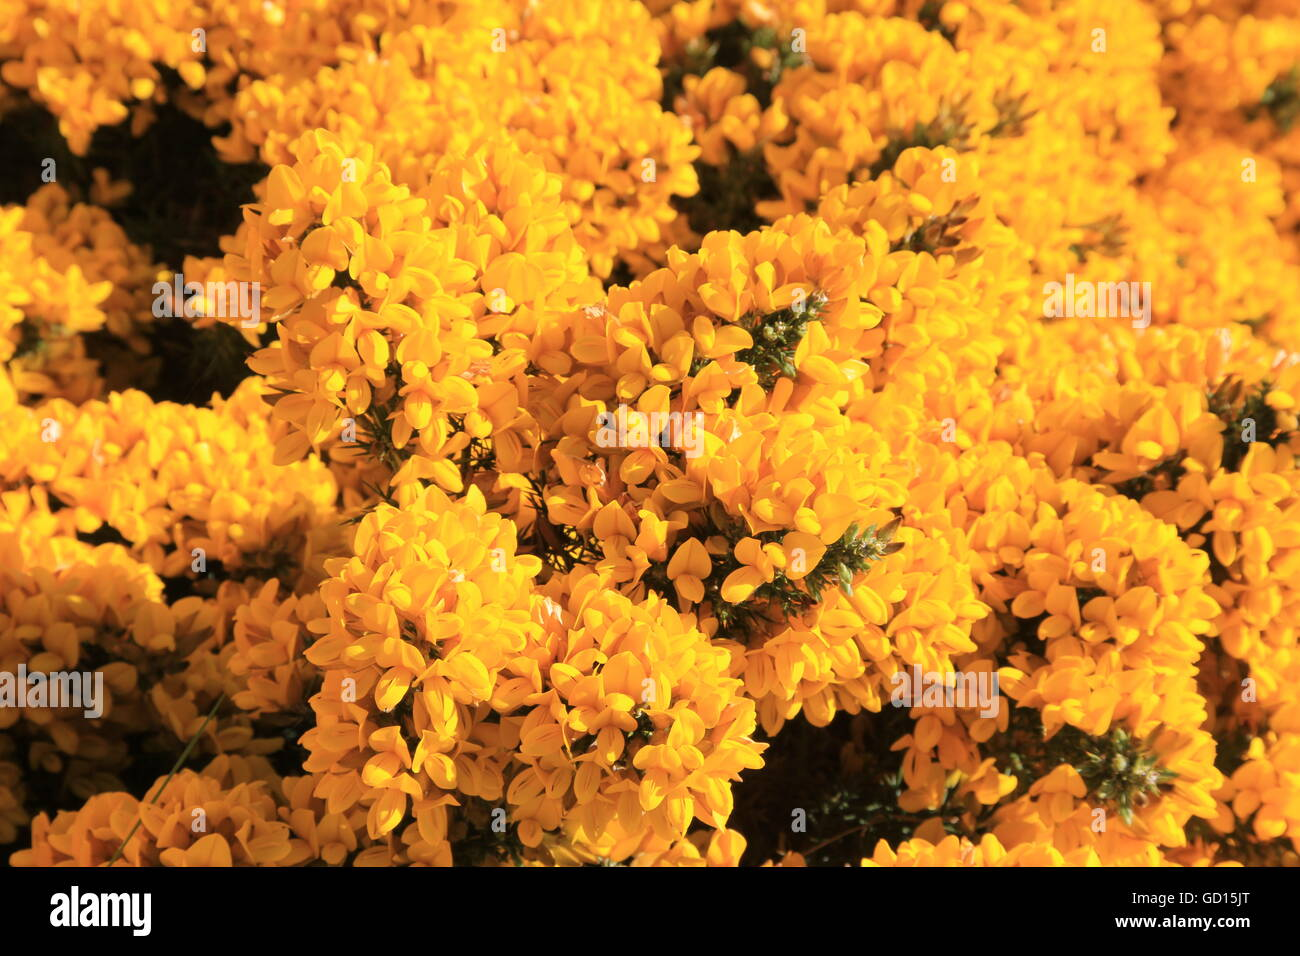 Yellow gorse, Stanley, Falkland Islands - Stock Image